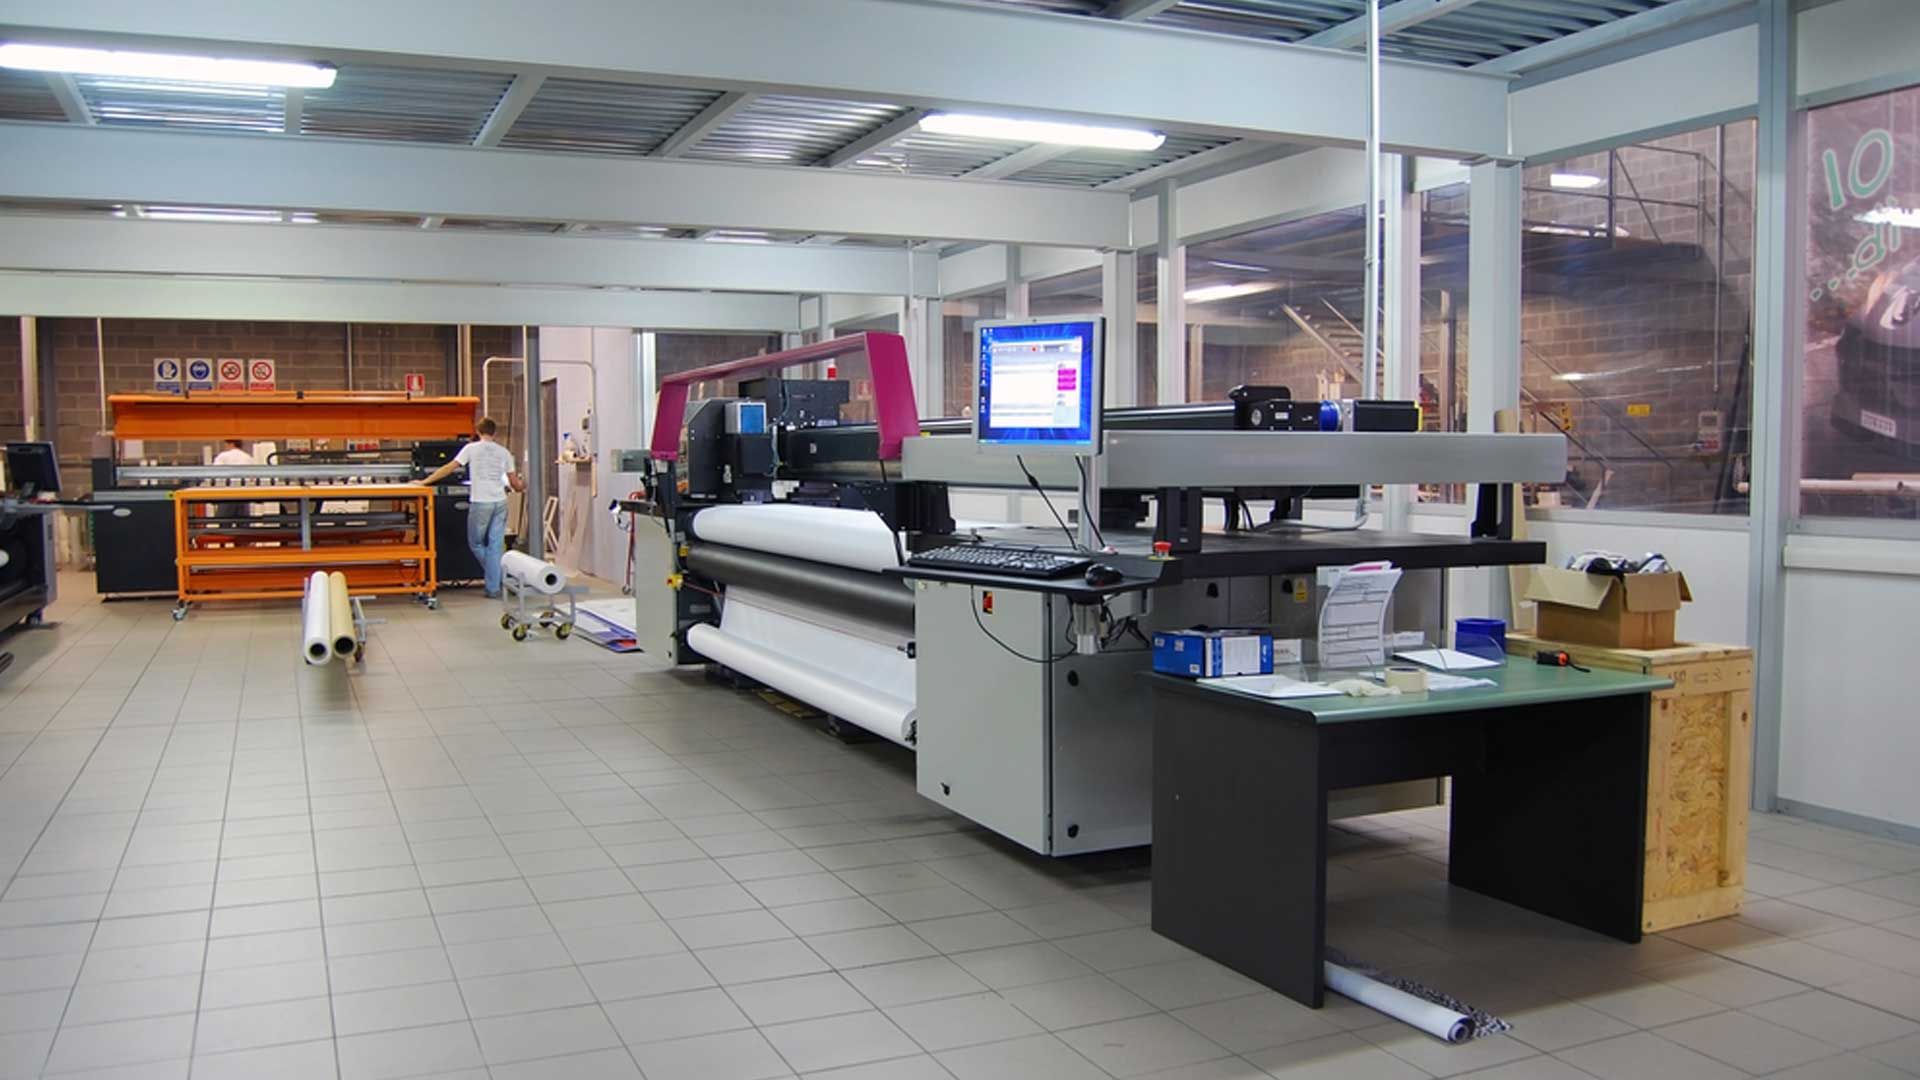 Digital printing services creative agencies businesses reheart Image collections